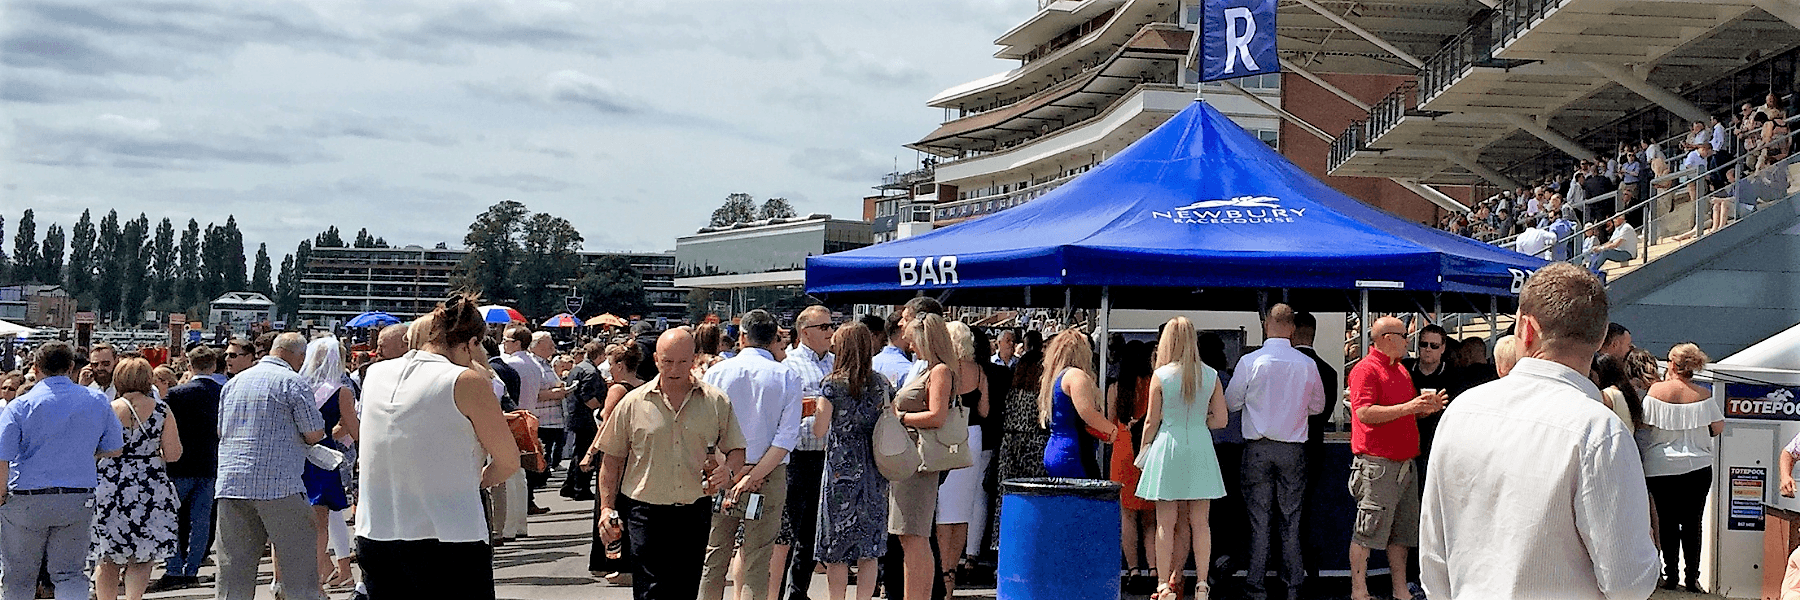 <p>Event, Mobile & Stadia Bar – Tents & Marquees – Octagonal Pavilion – Event Bar</p> <p> </p> <p>Ideally suited as a Premium Drinks outdoor event bar for racecourse or other high-profile sporting events.</p> <p> </p> <p>Branding to suit venue, event or drinks brand</p>